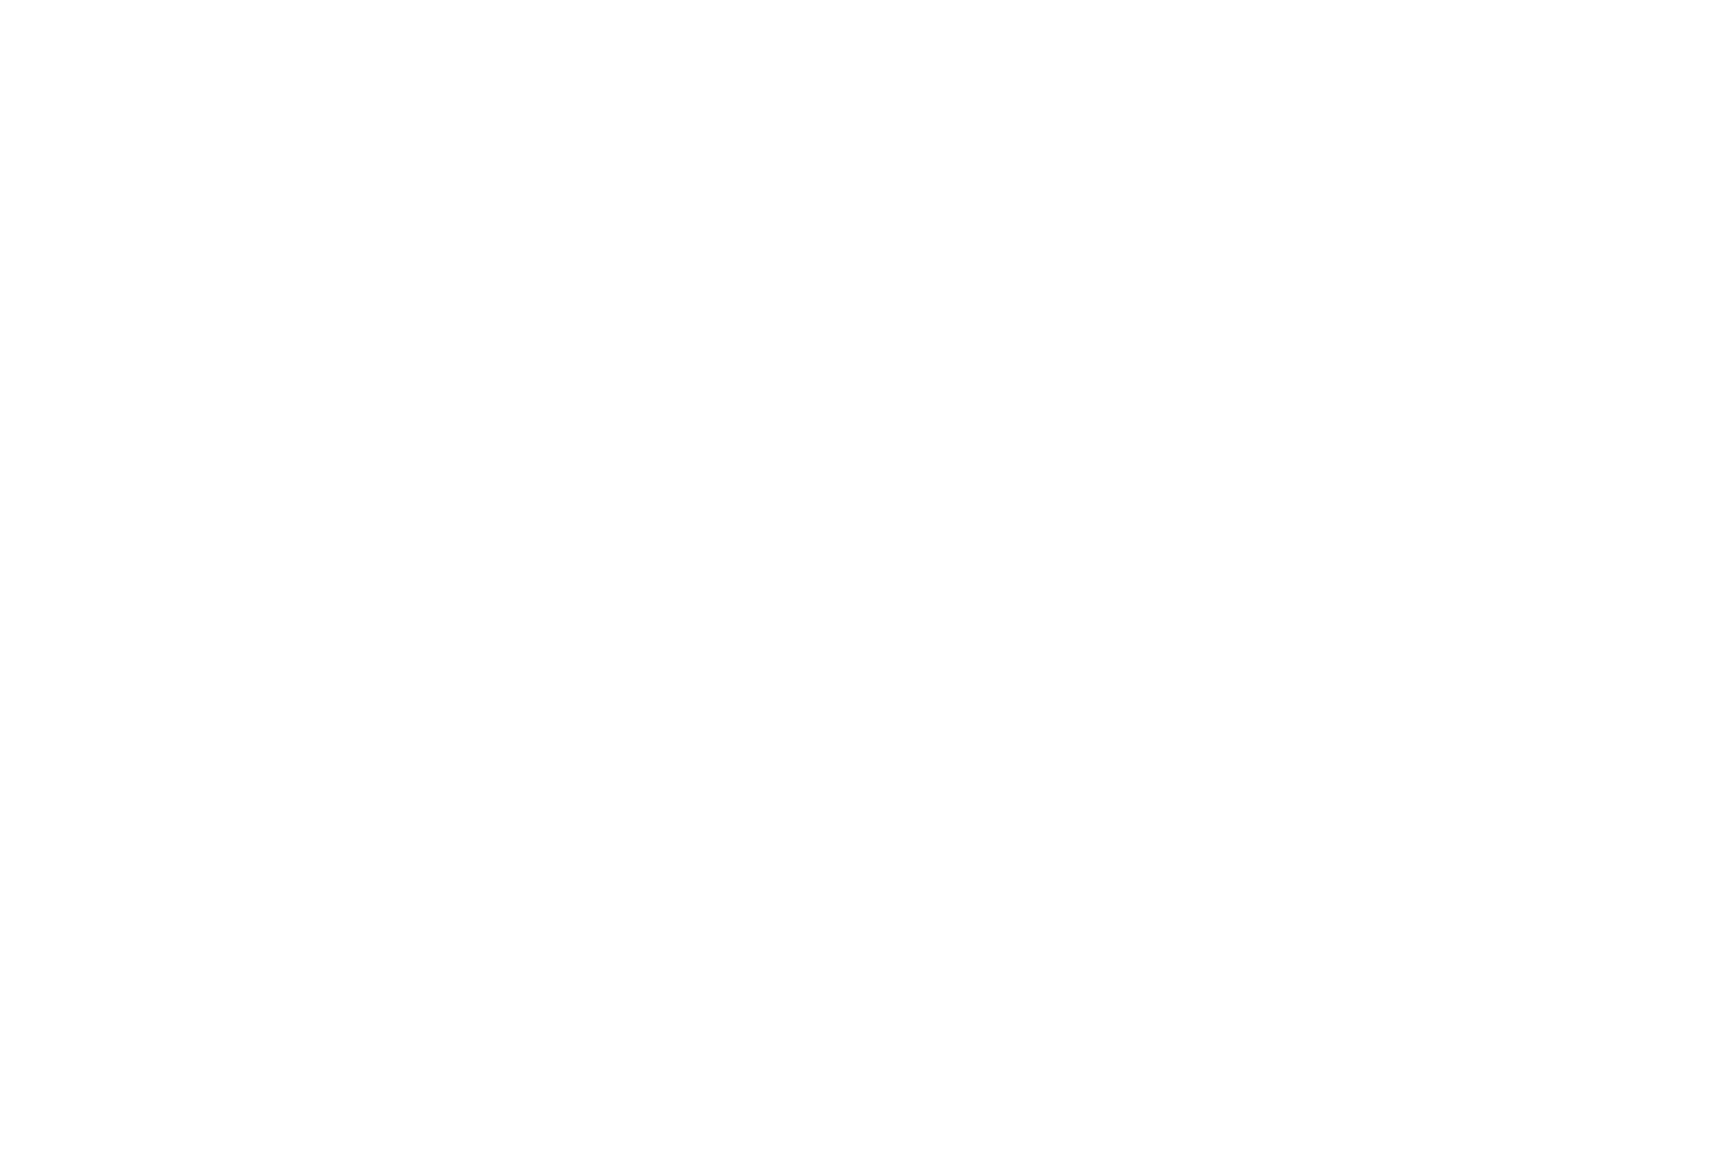 OFFICIAL SELECTION - Marina del Rey Film Festival - 2020